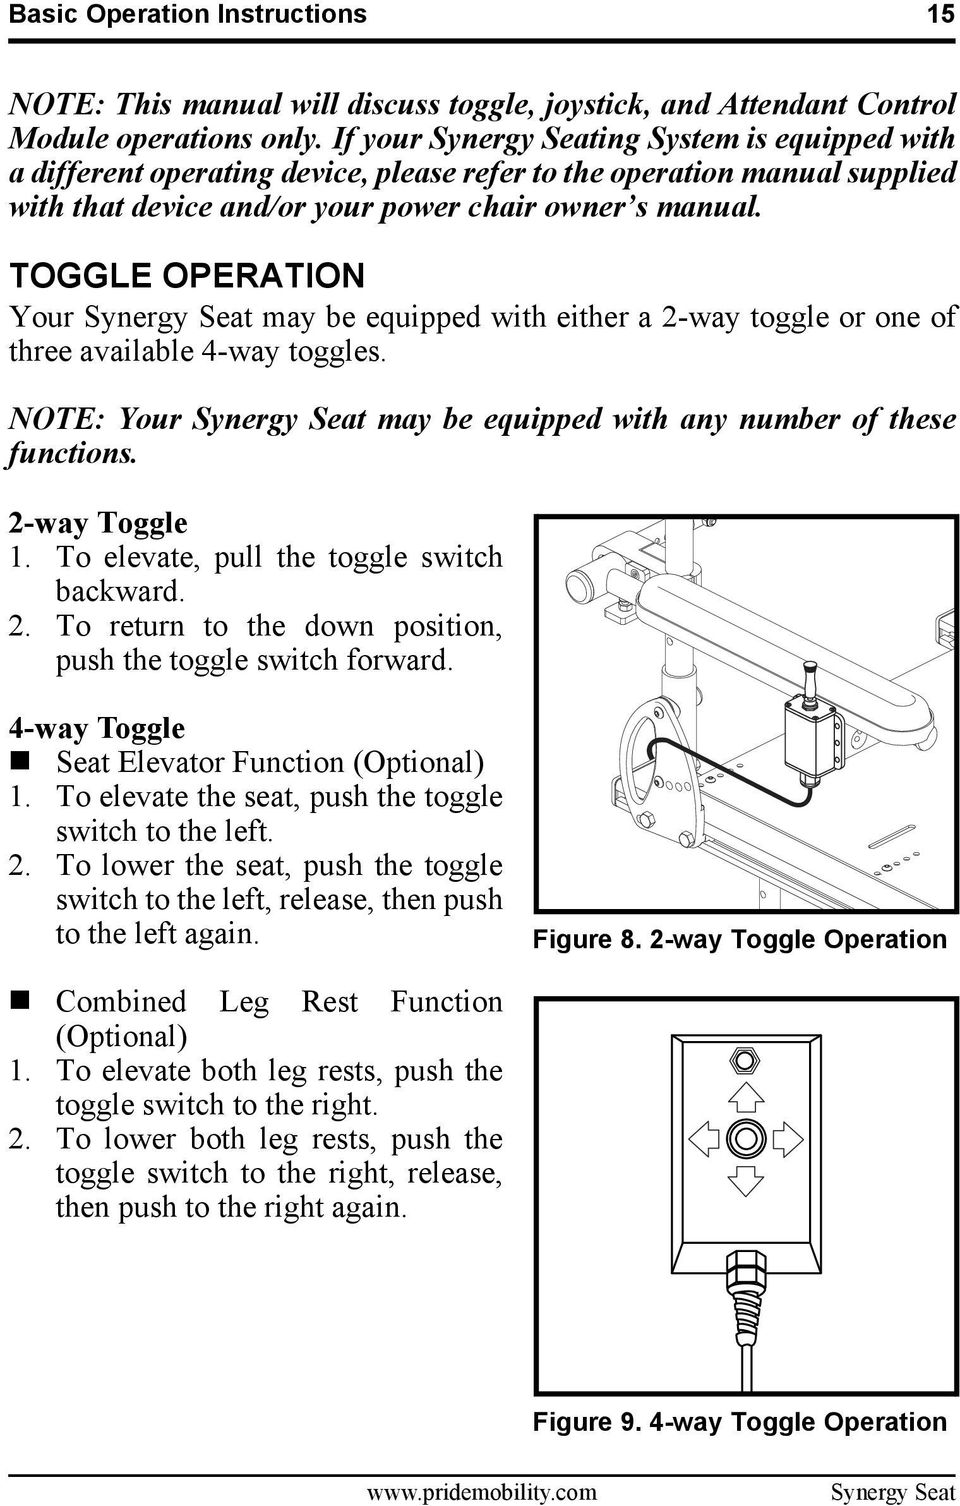 Synergy Tru Balance Basic Operation Instructions Power Tilt 2 Way Switch Toggle Your May Be Equipped With Either A Or One Of